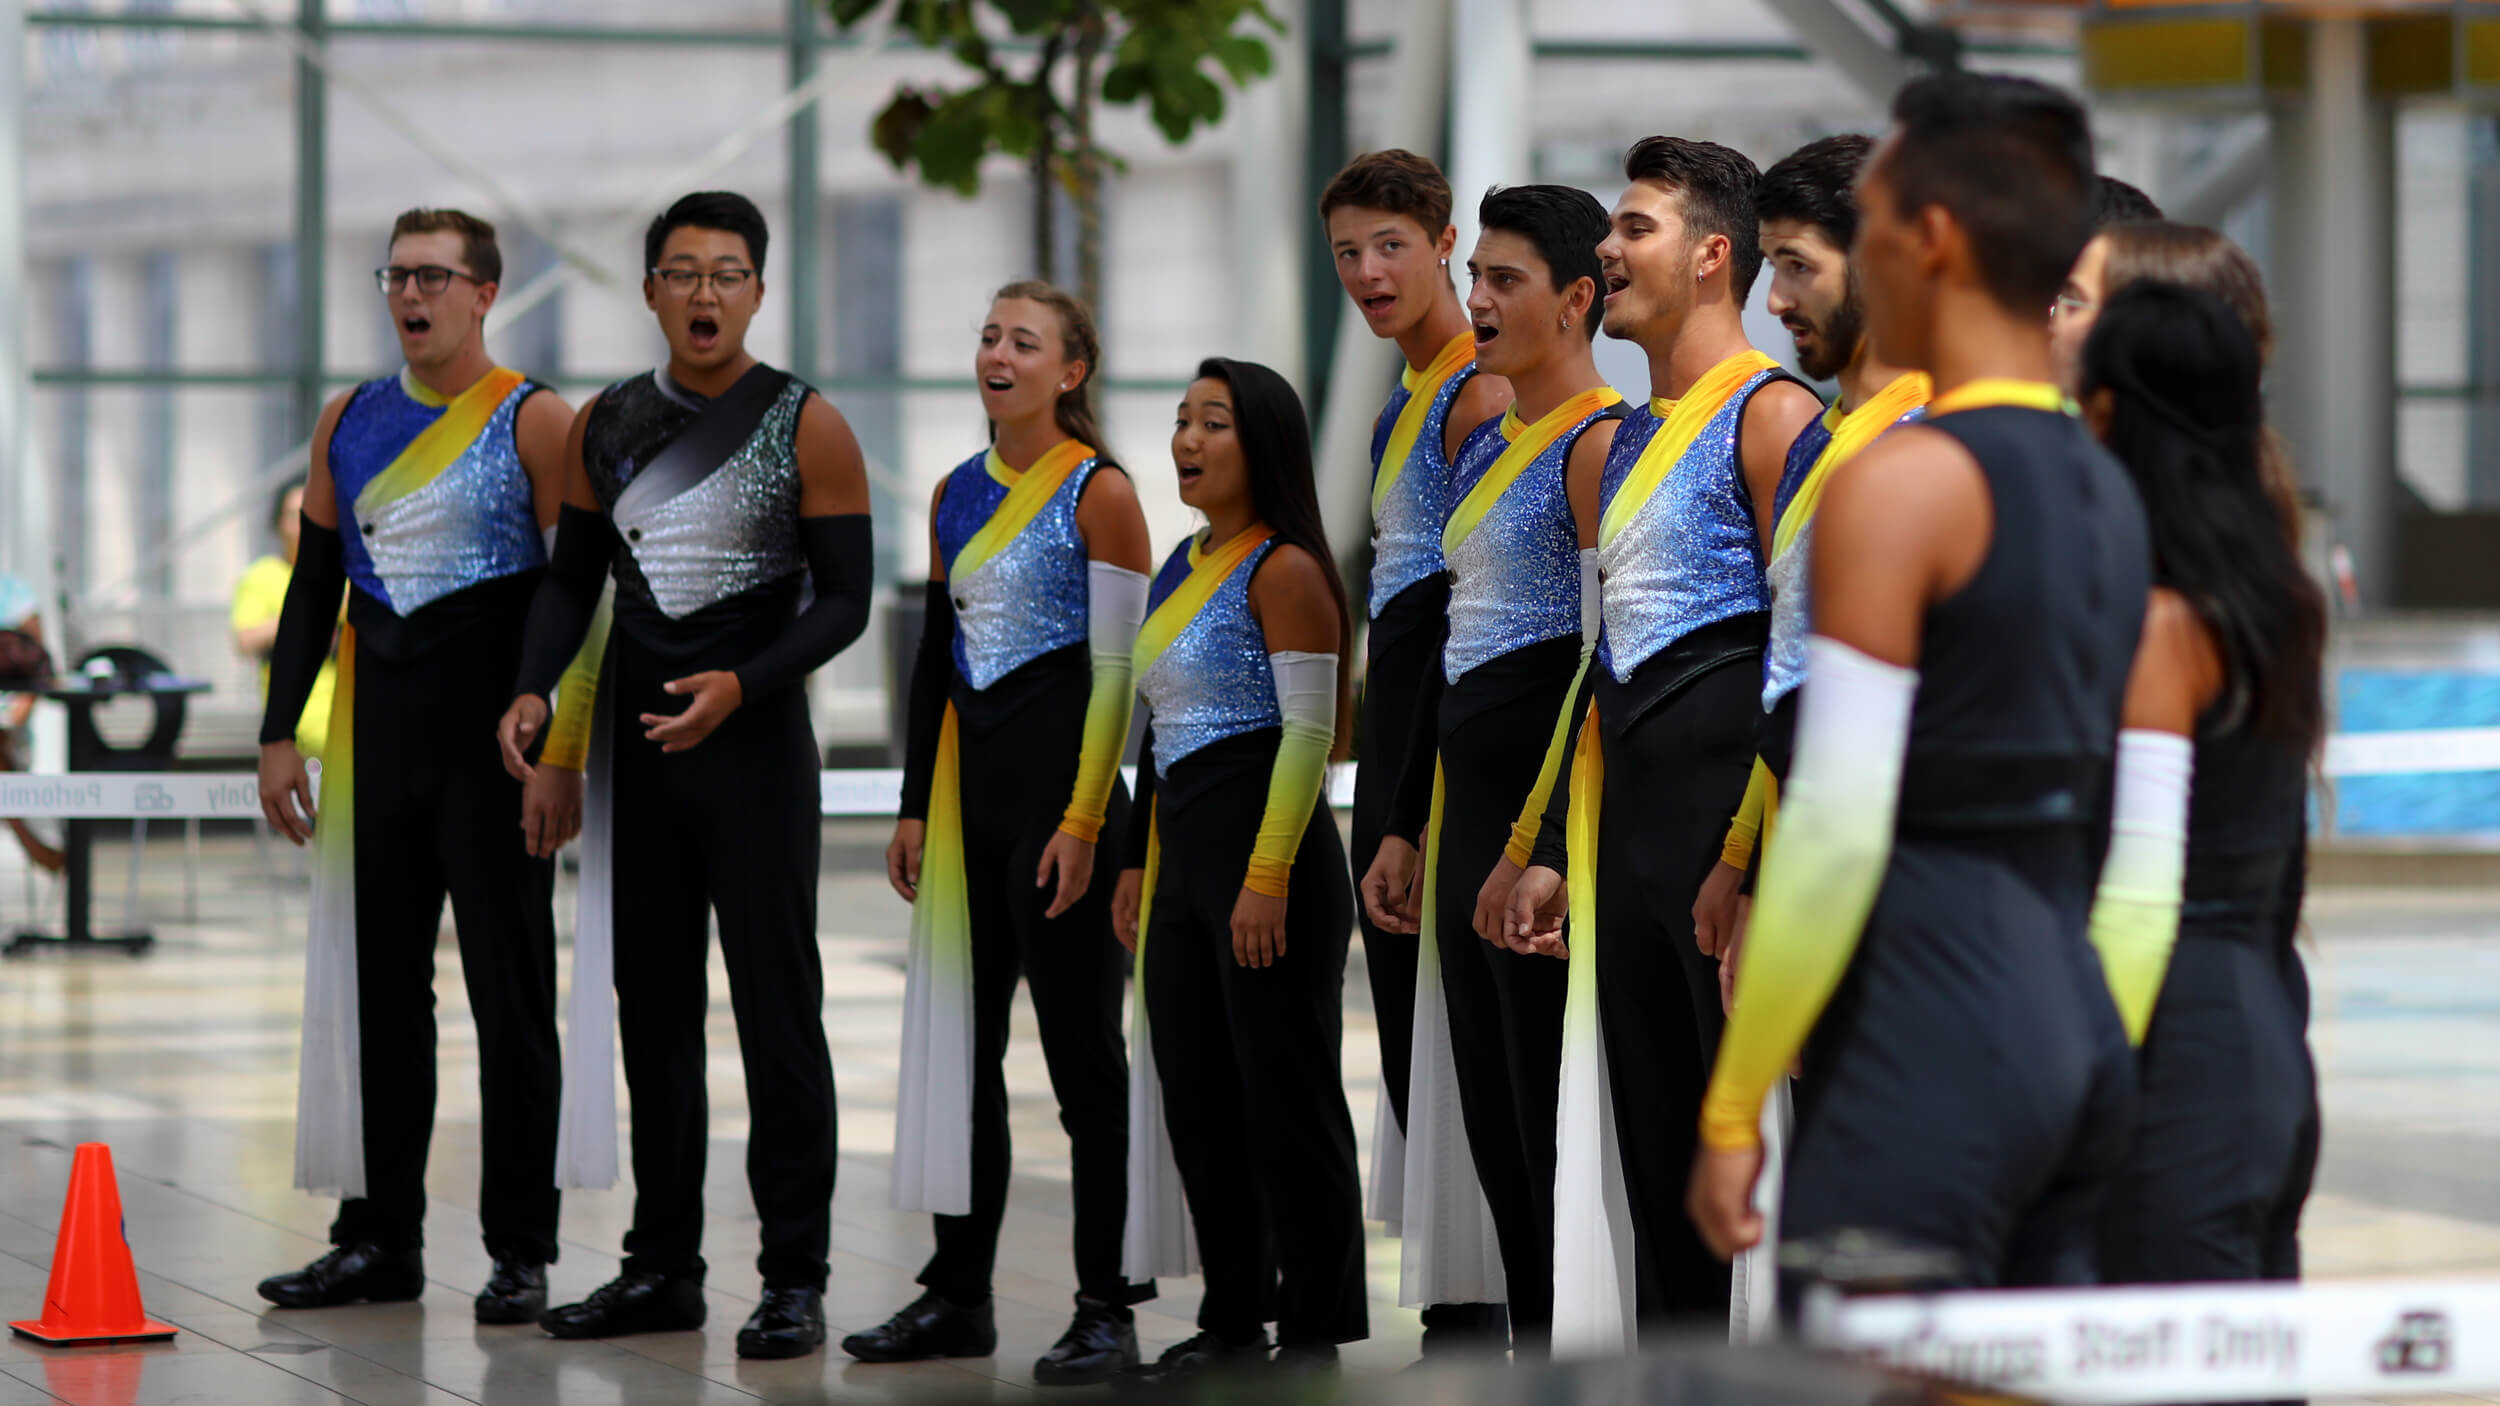 Performers Showcase kicks off World Championships action in Circle City